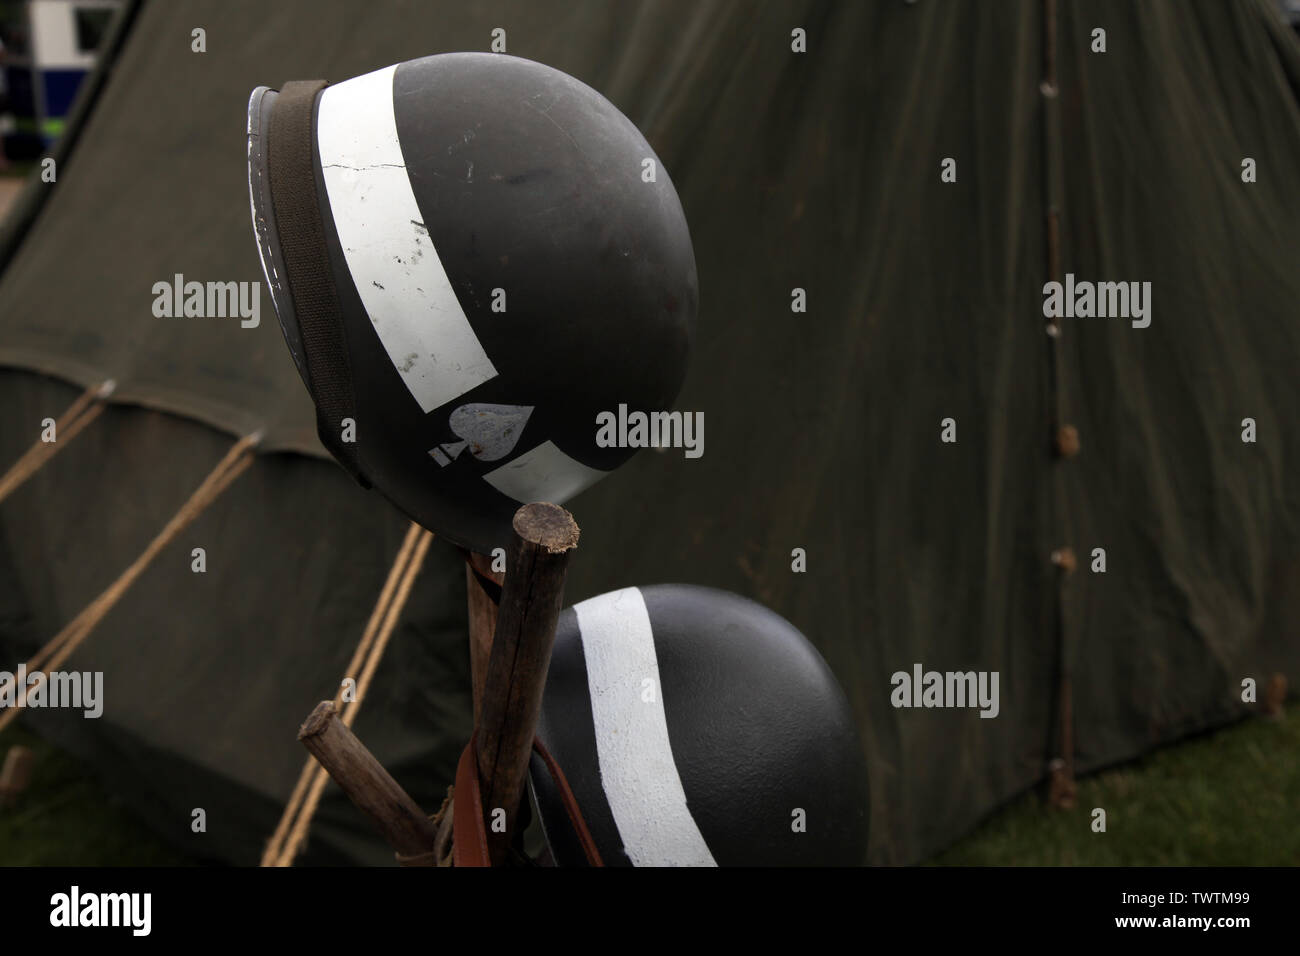 Ww2 Helmet Stock Photos & Ww2 Helmet Stock Images - Alamy